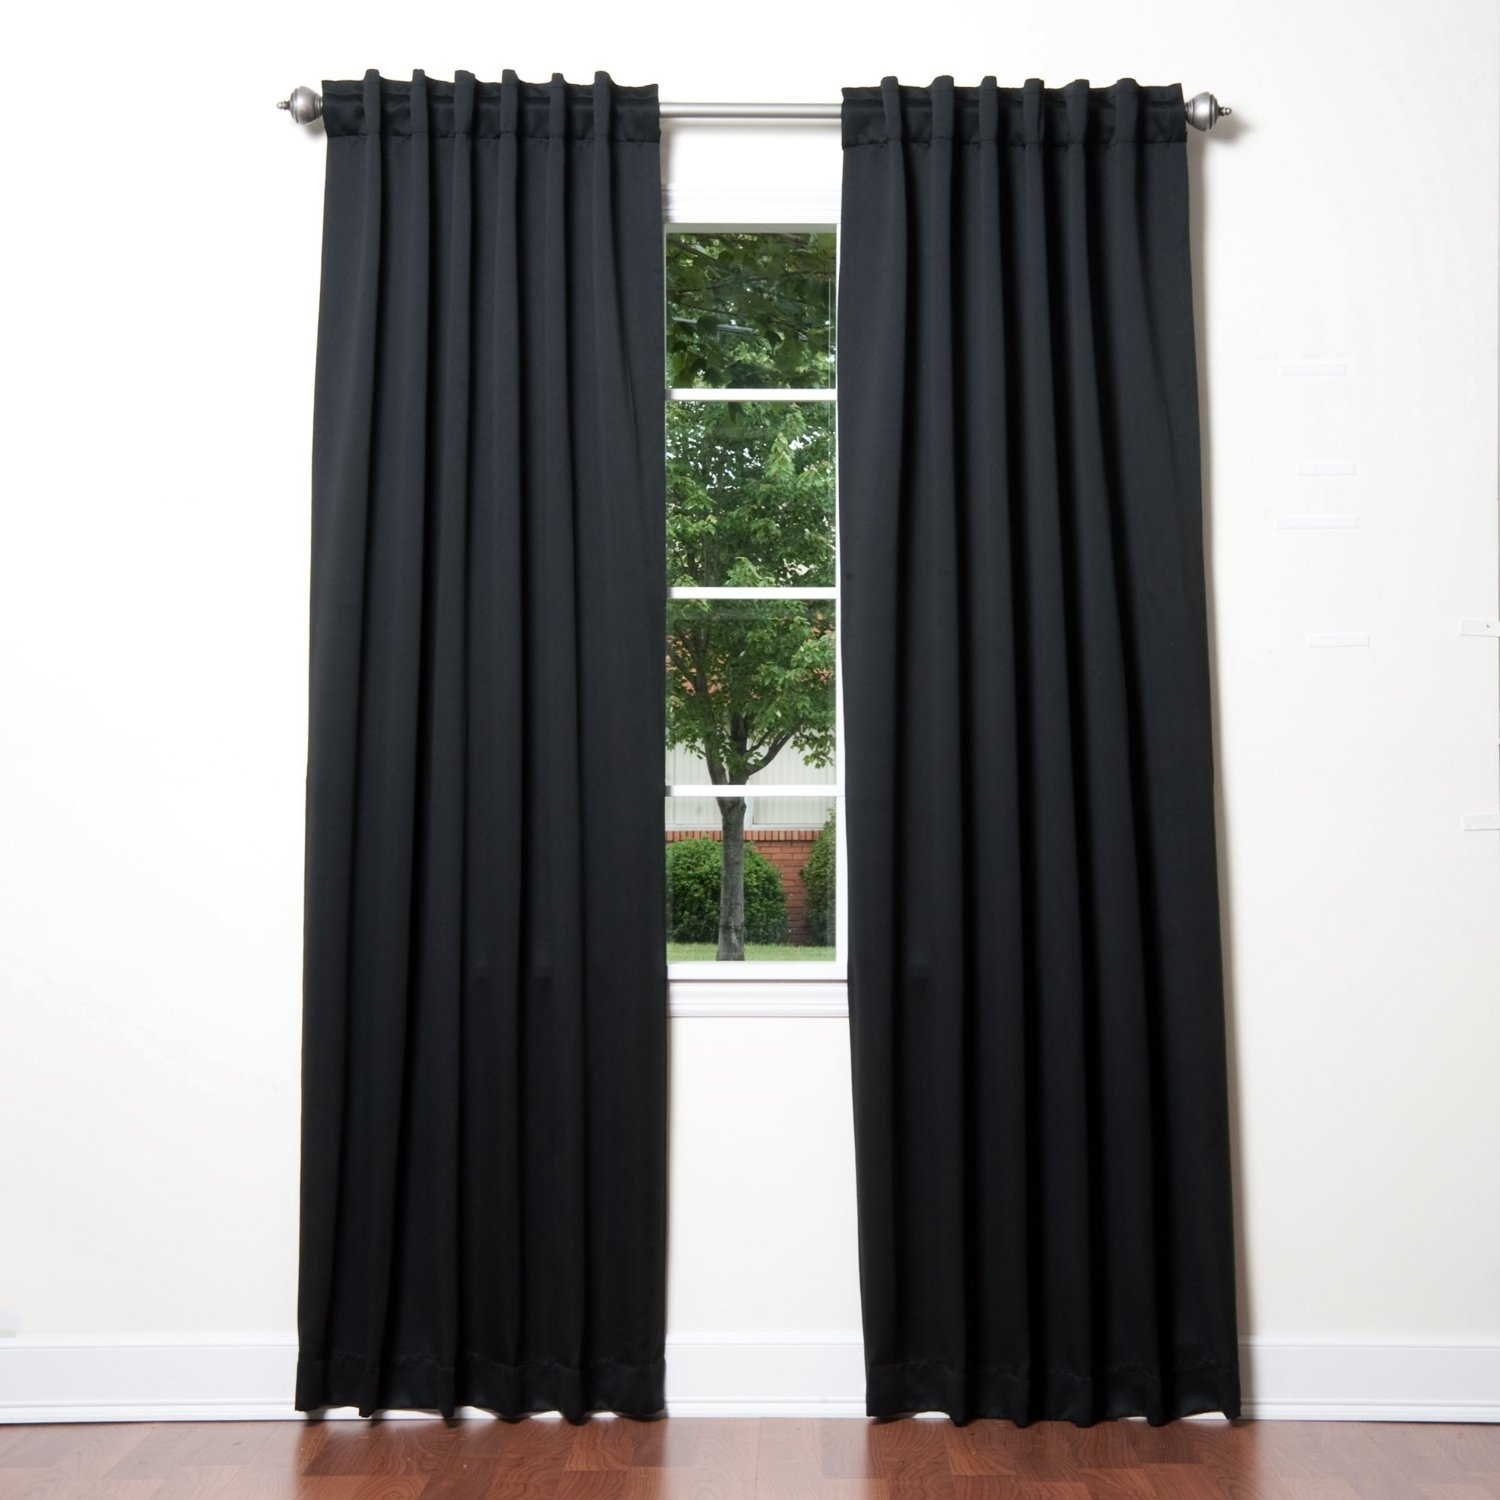 Amazon Best Home Fashion Thermal Insulated Blackout Curtains In Noise And Light Blocking Curtains (View 3 of 15)